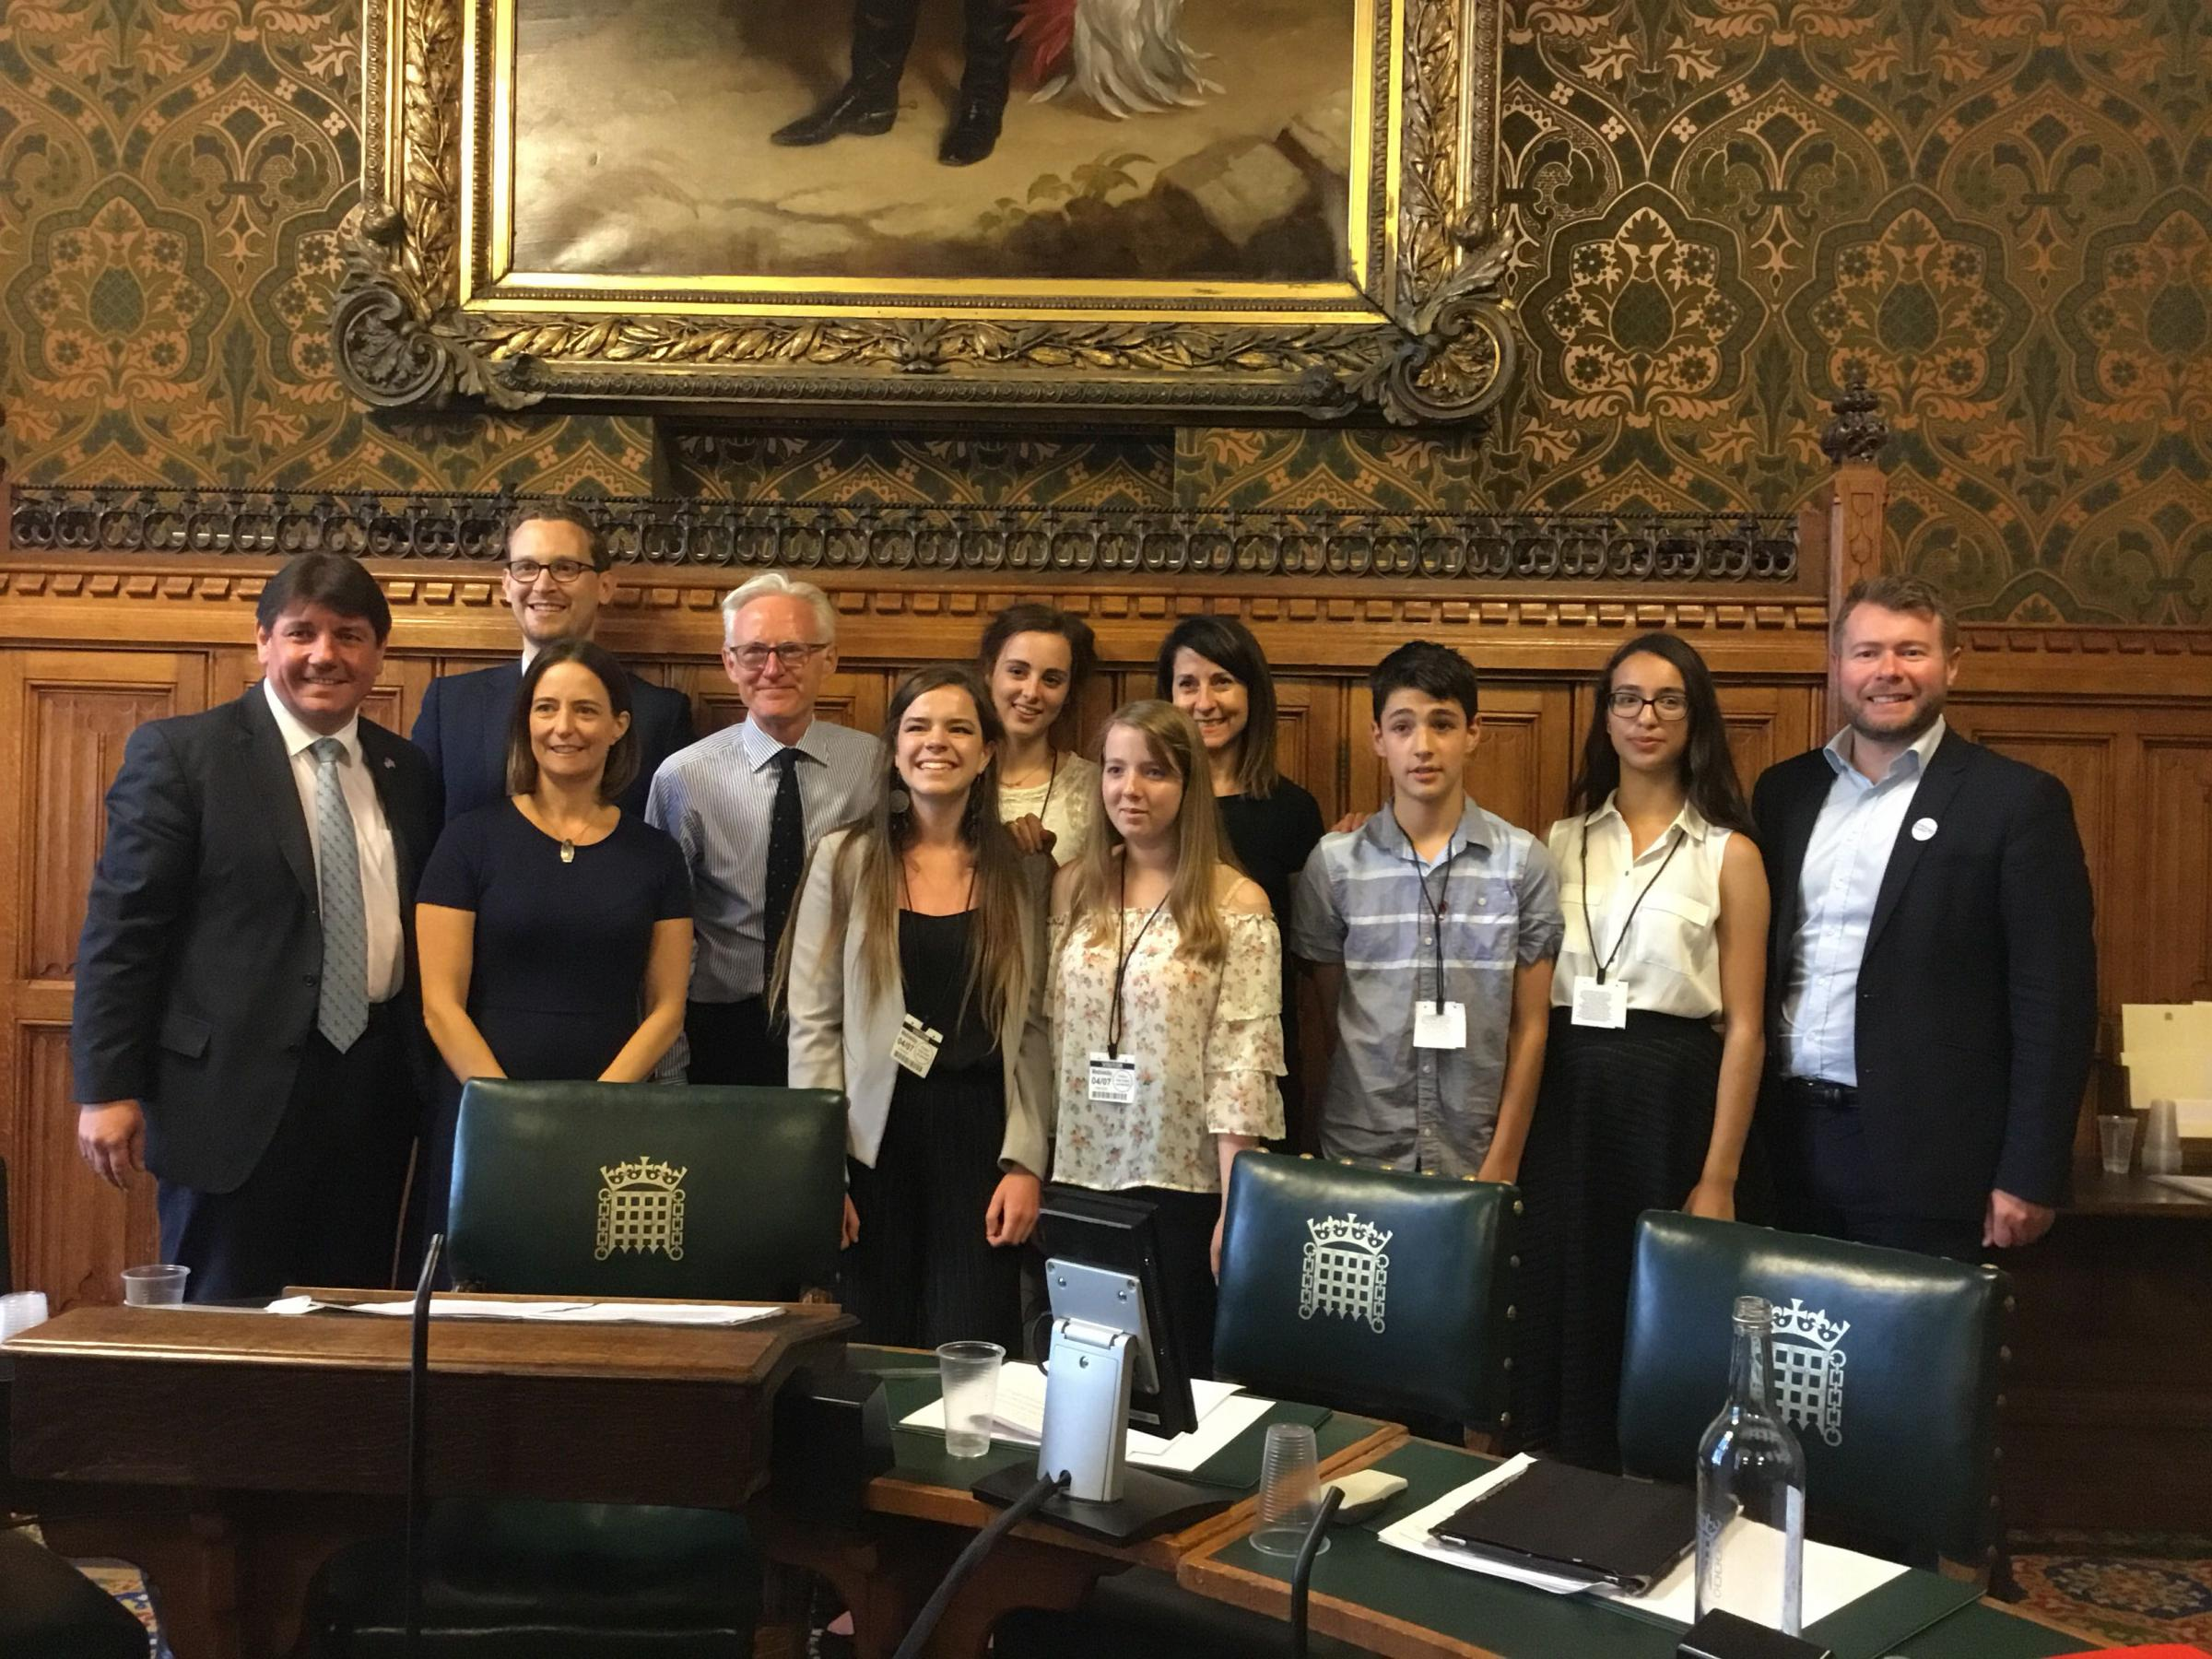 Orlaith Lindsay, (second from right) with MPs and fellow young people at the Commons Science and Technology Committee